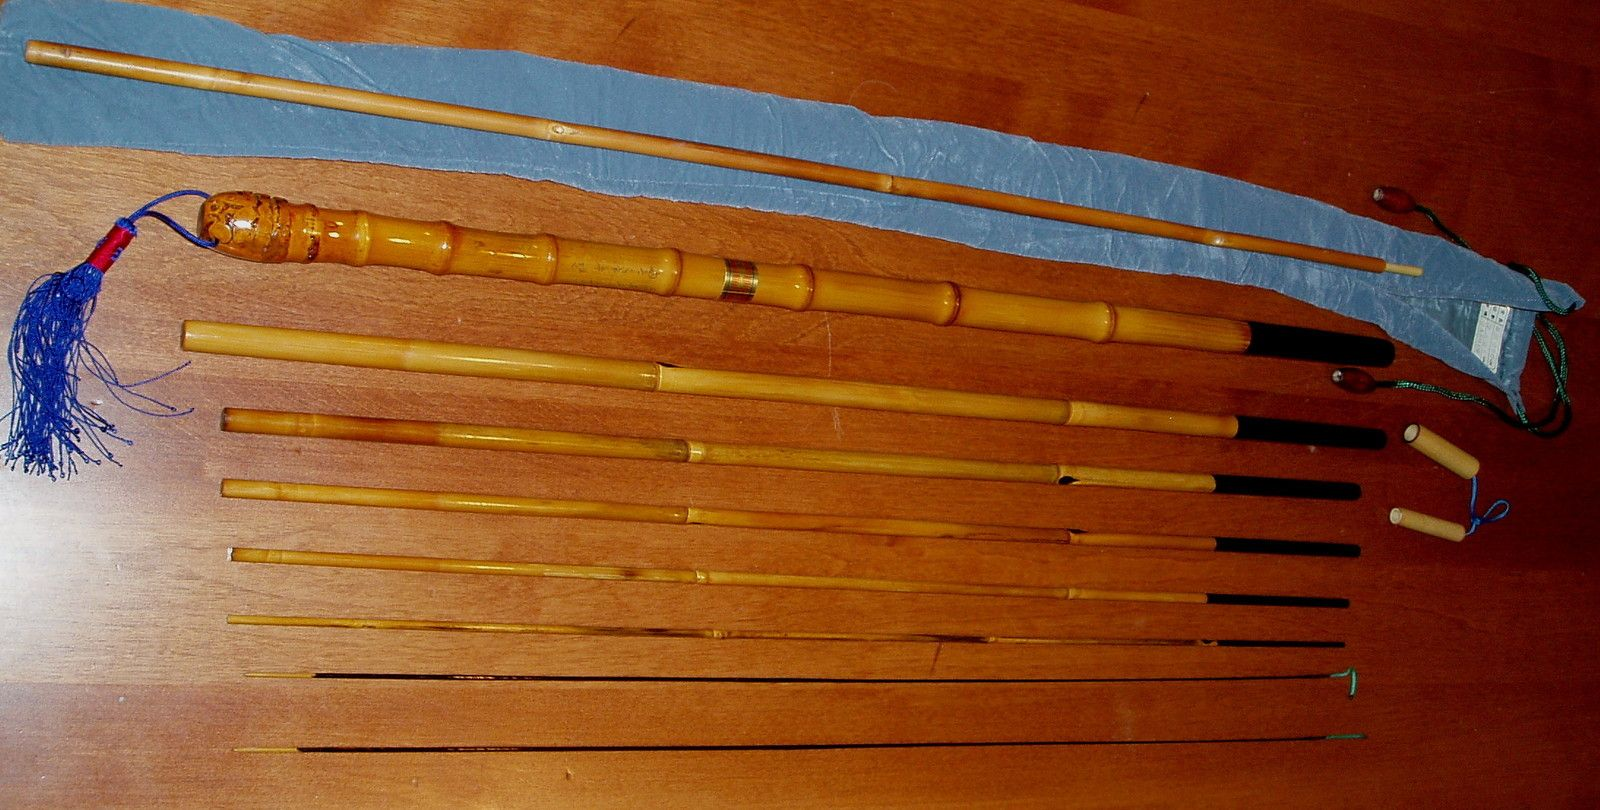 Bamboo tenkara fly rod vintage 7 piece 360 cm w 2 tips for Vintage fishing poles